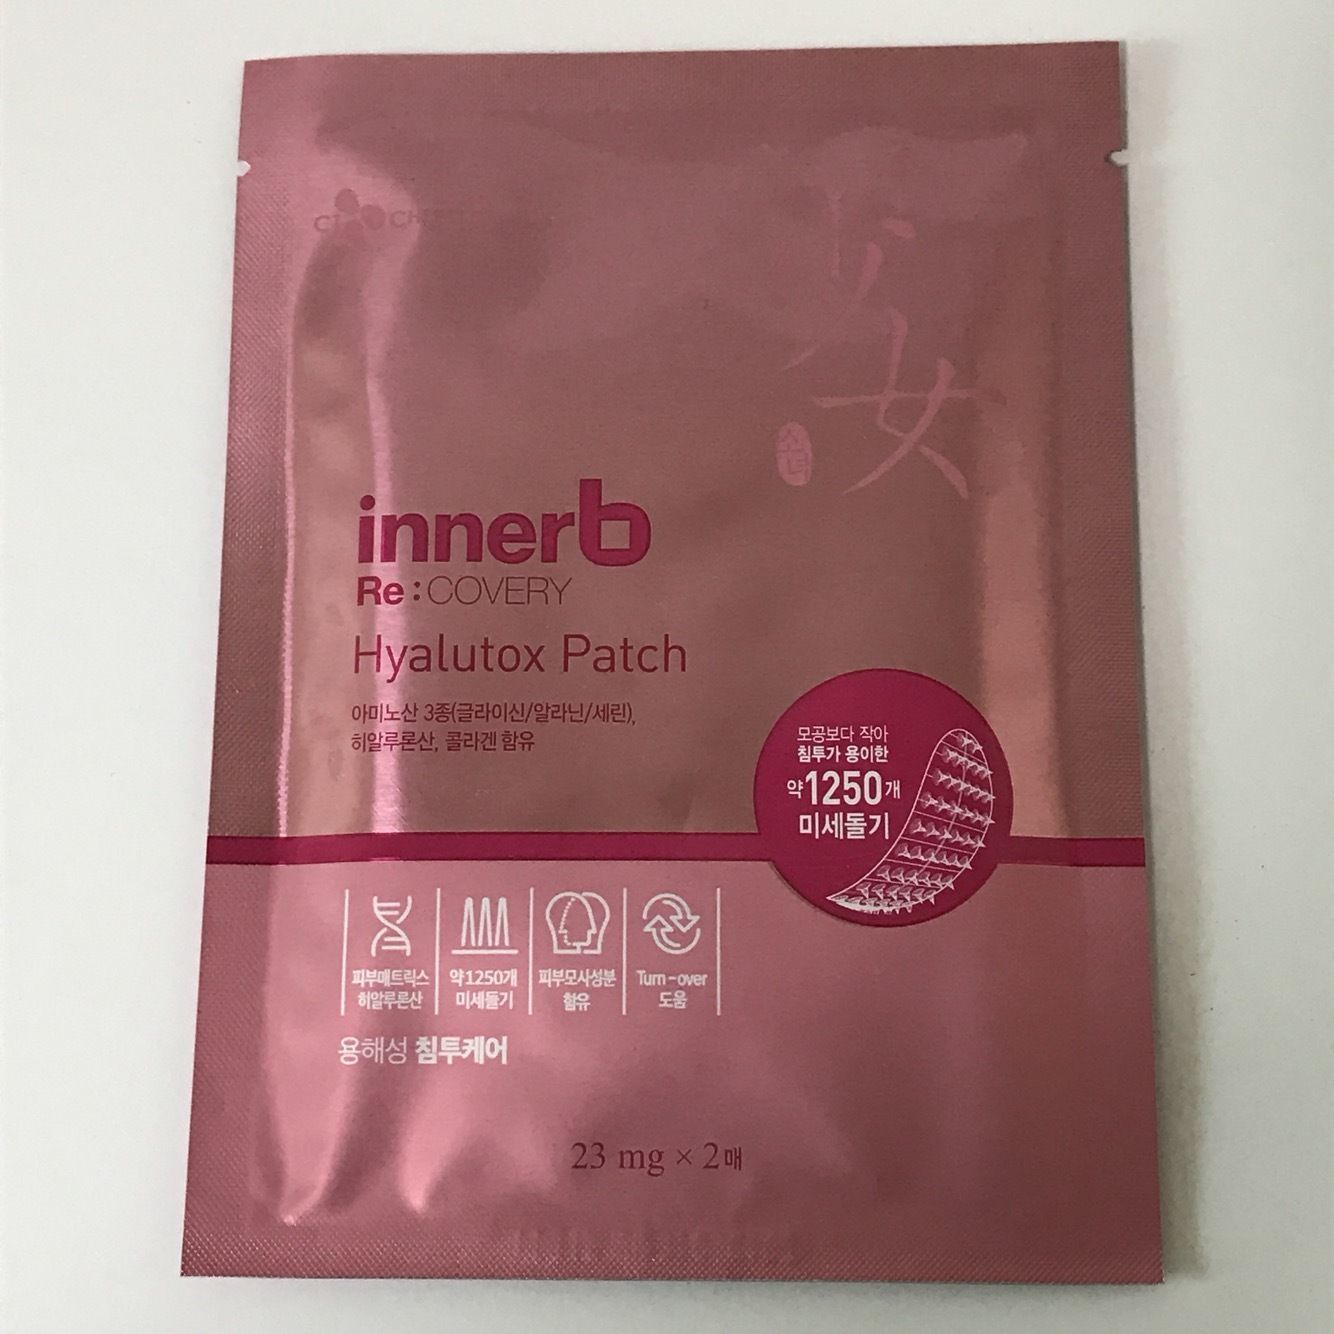 innerb Re:COVERY Hyalutox Patch 23mg X 2ea - $11.88